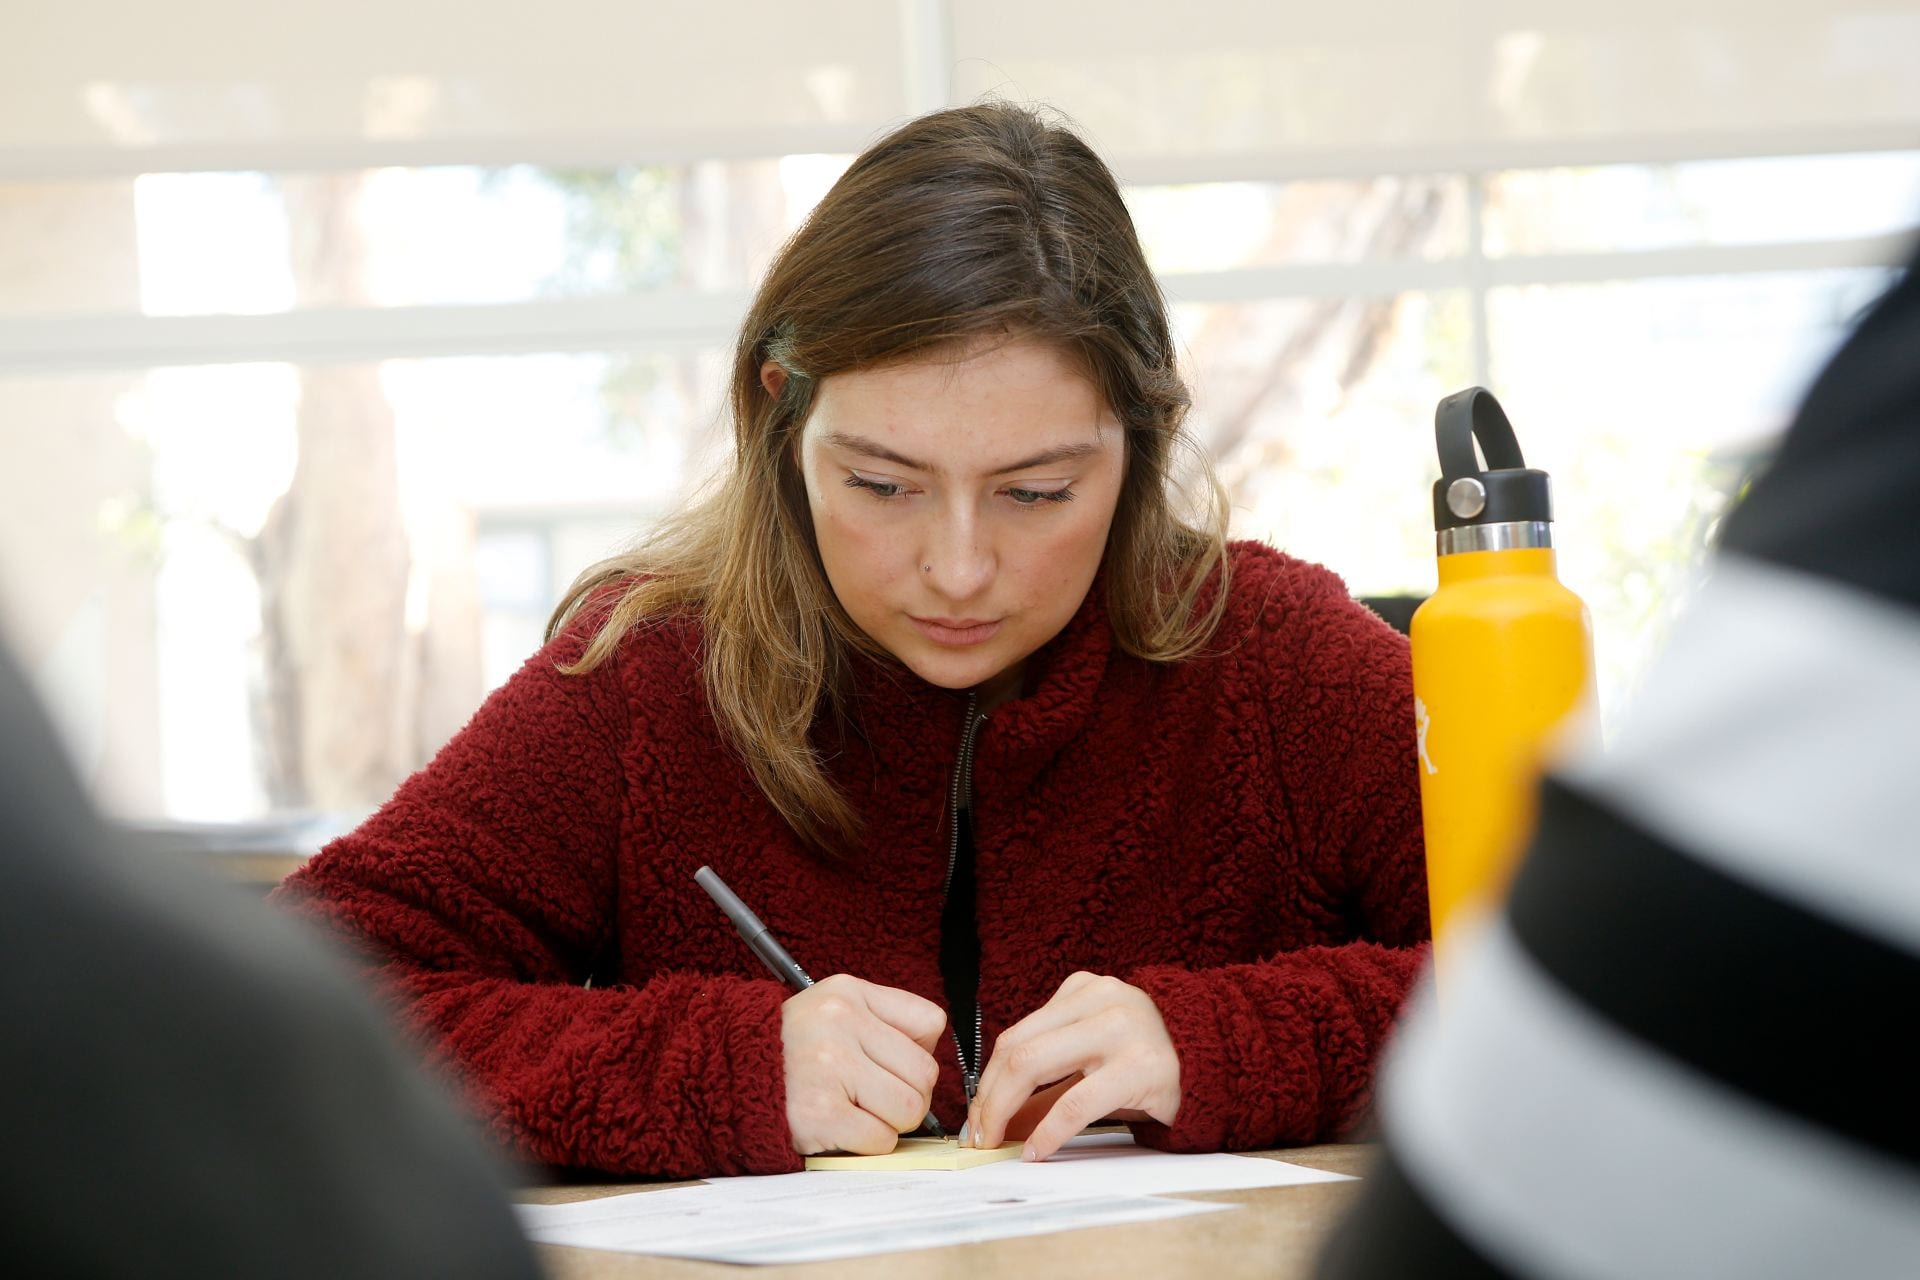 Lyzett Levenant, a senior biology major, participated in a focus group with Education Design Lab to help SJSU select two digital badges to pilot in the spring. ( Josie Lepe/San Jose State University )